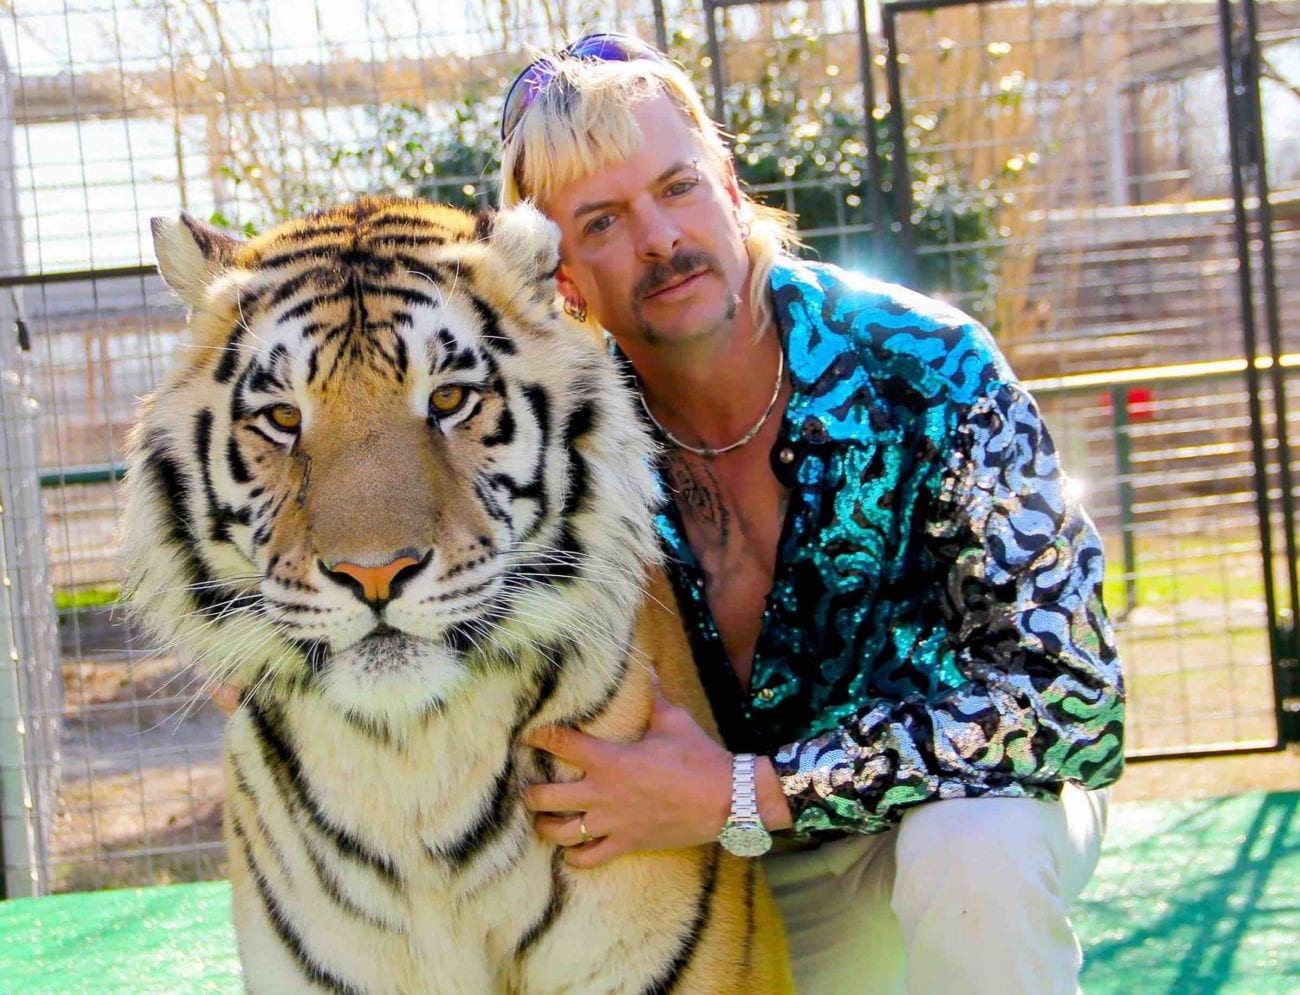 Netflix's 'Tiger King' is going into the story of Joe Exotic's claim to fame and his rise and fall. Here's everything we know about 'Tiger King'.